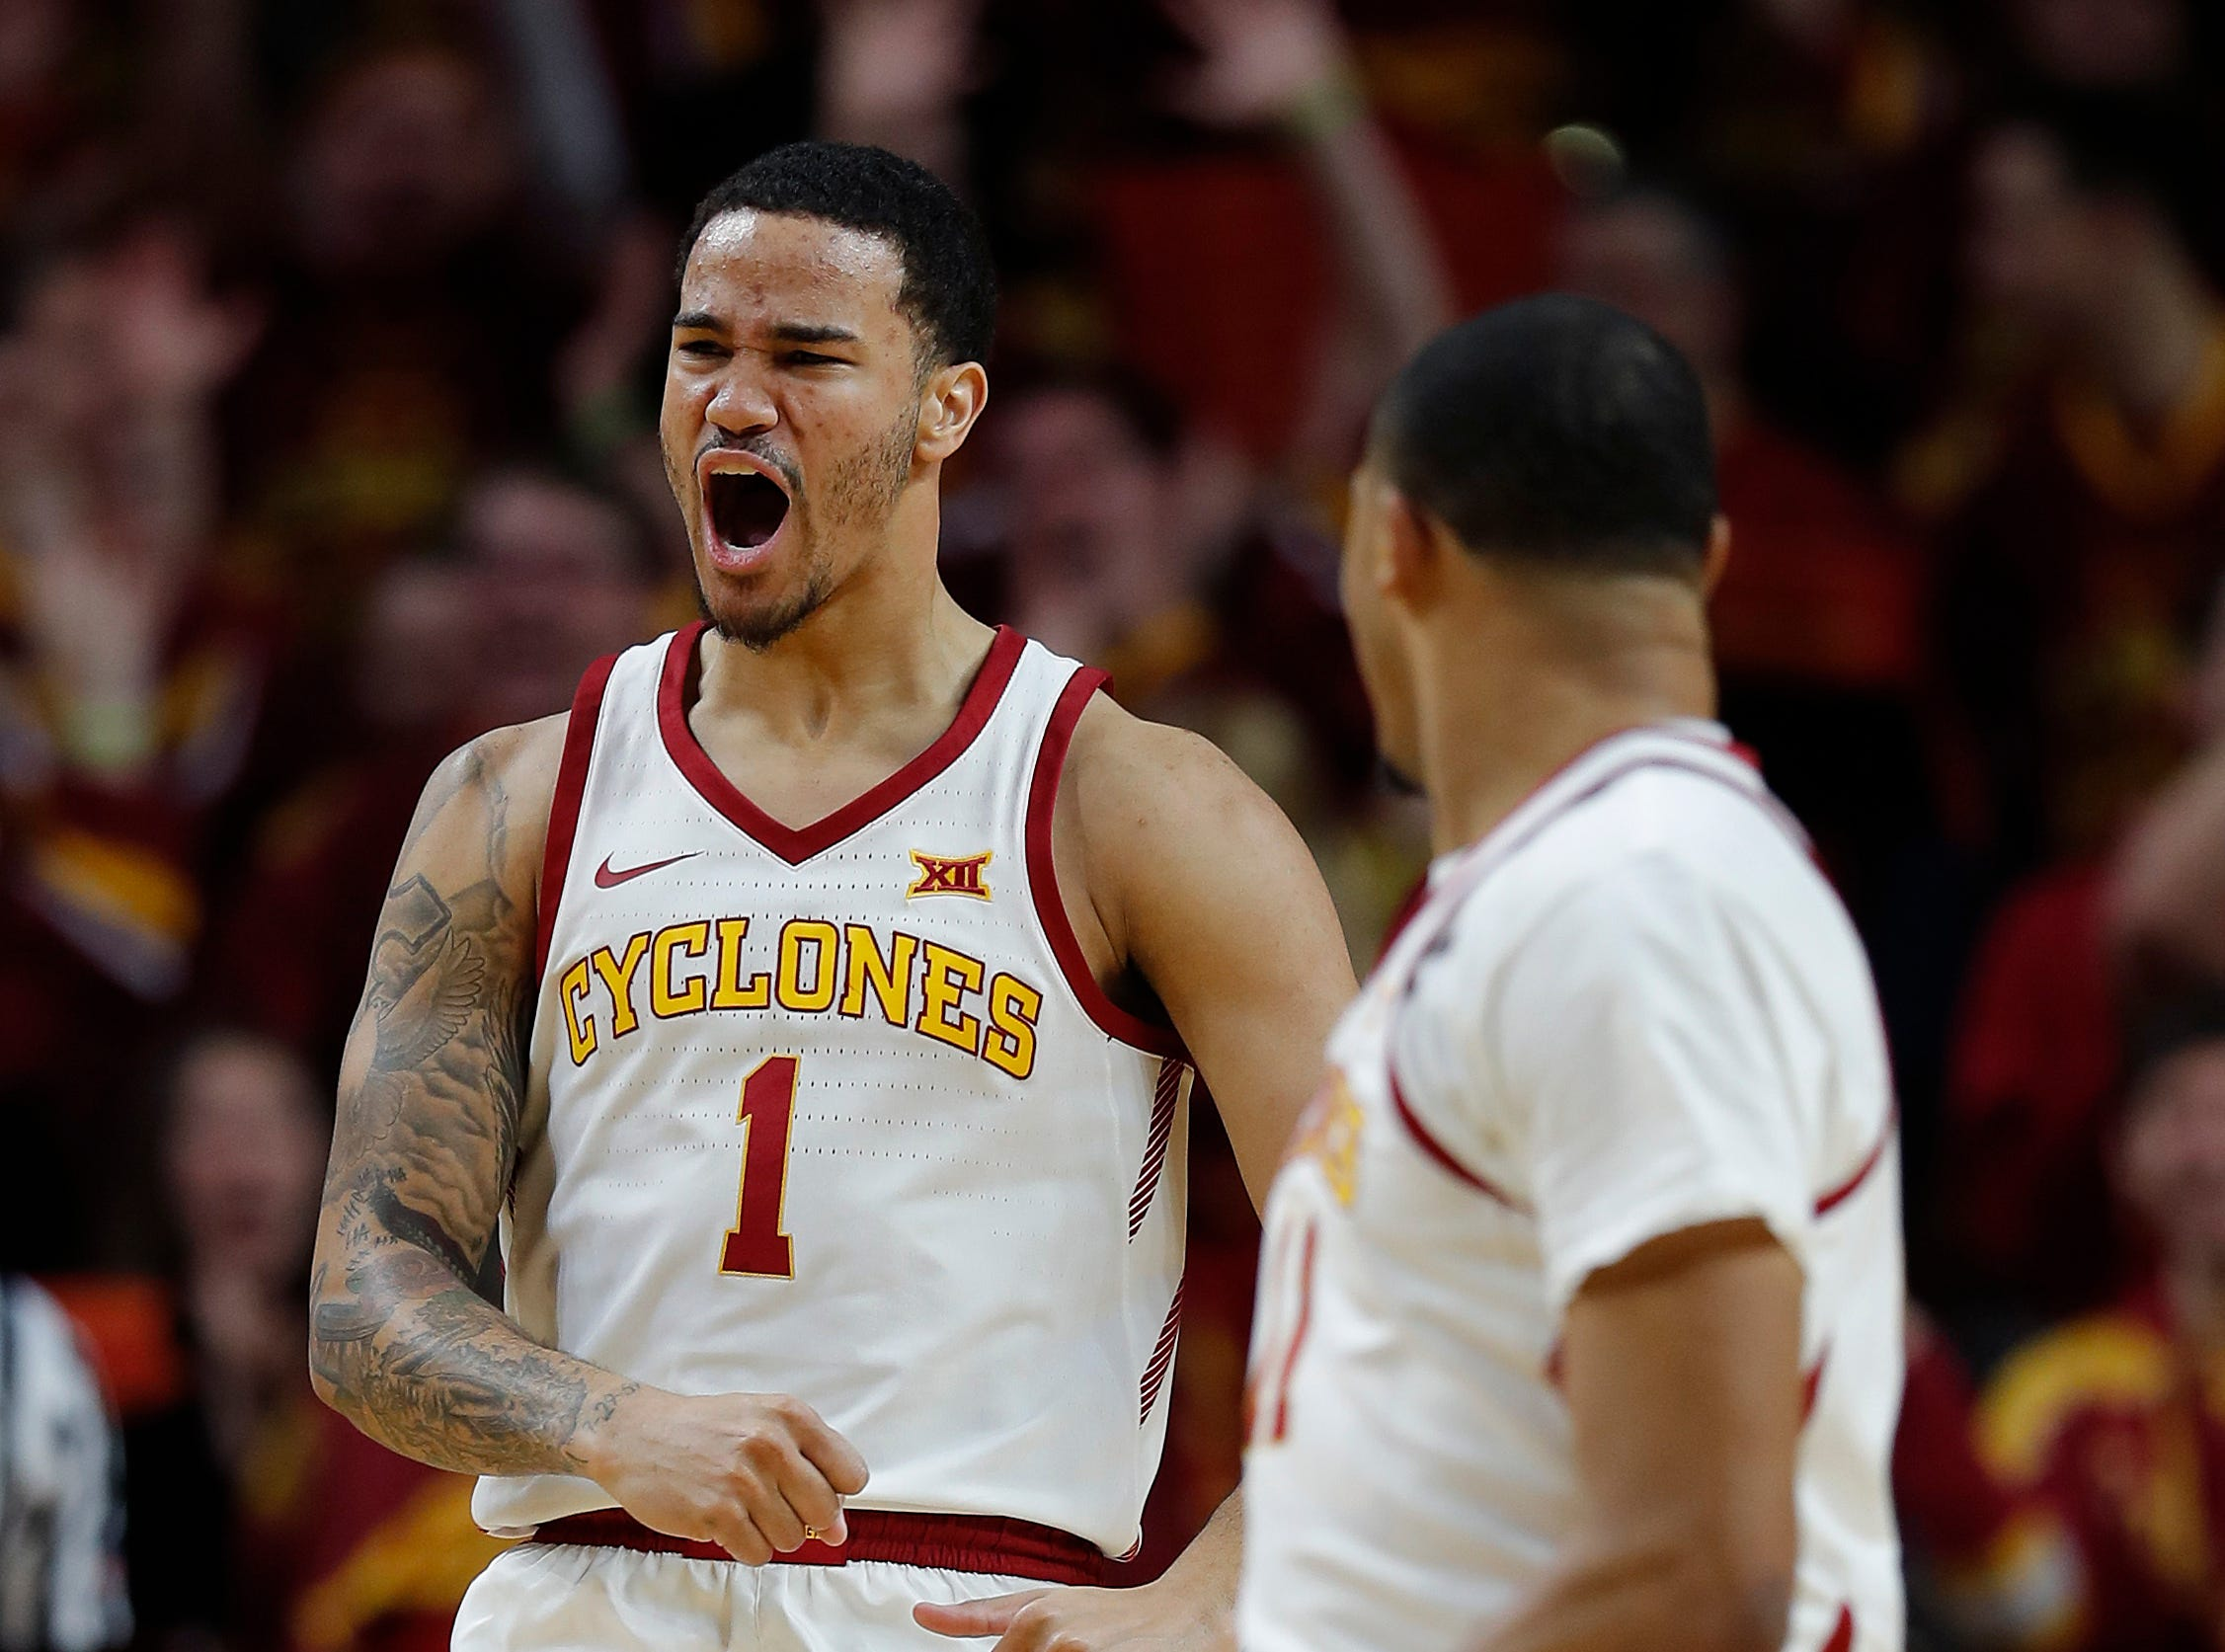 Iowa State guard Nick Weiler-Babb, left, celebrates his dunk with guard Talen Horton-Tucker, right, during their game Saturday, Feb. 9, 2019, in Ames.